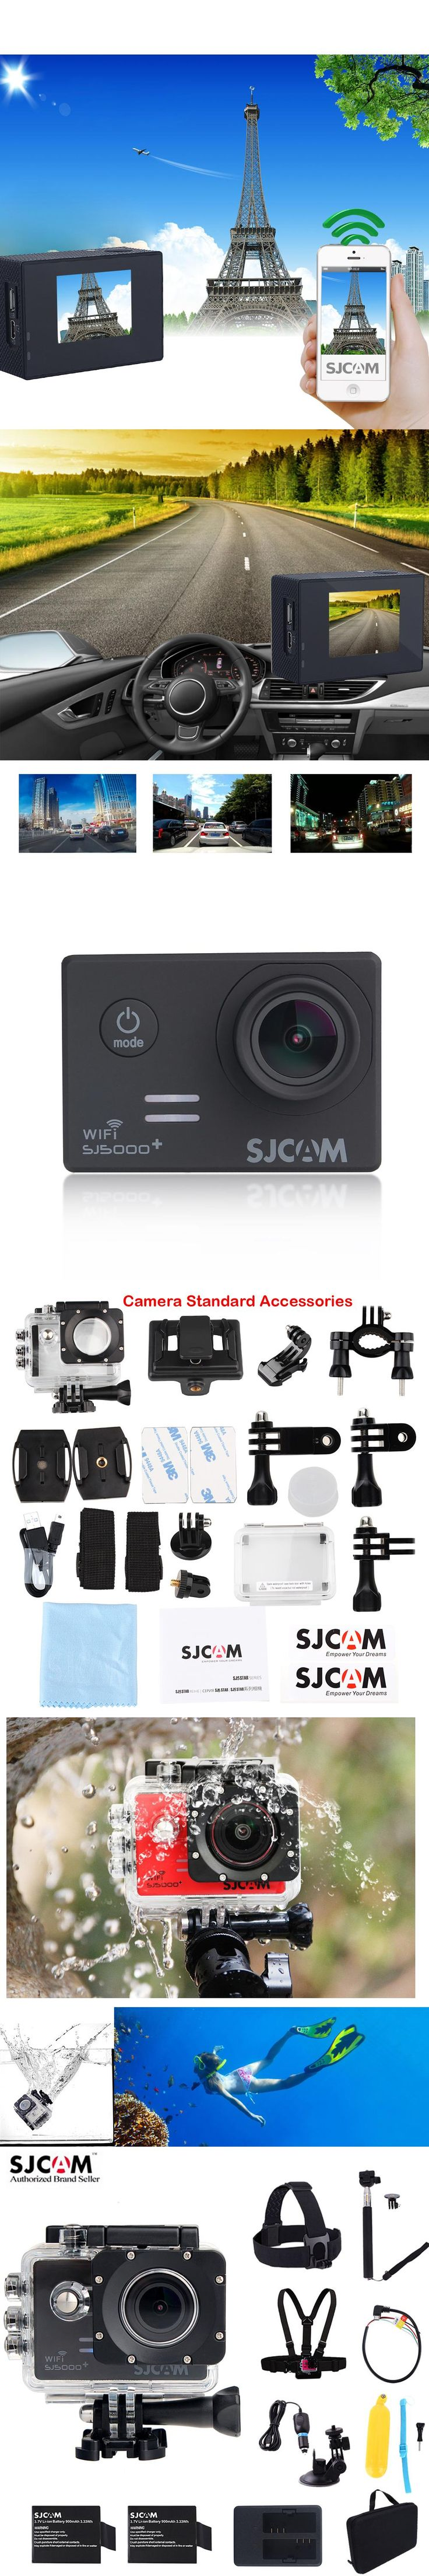 "100% Original SJCAM SJ5000 Plus WiFi 1.54"" Diving 30M Waterproof Outdoor Sports Action Mini Camera Sj 5000 plus Cam DVR"